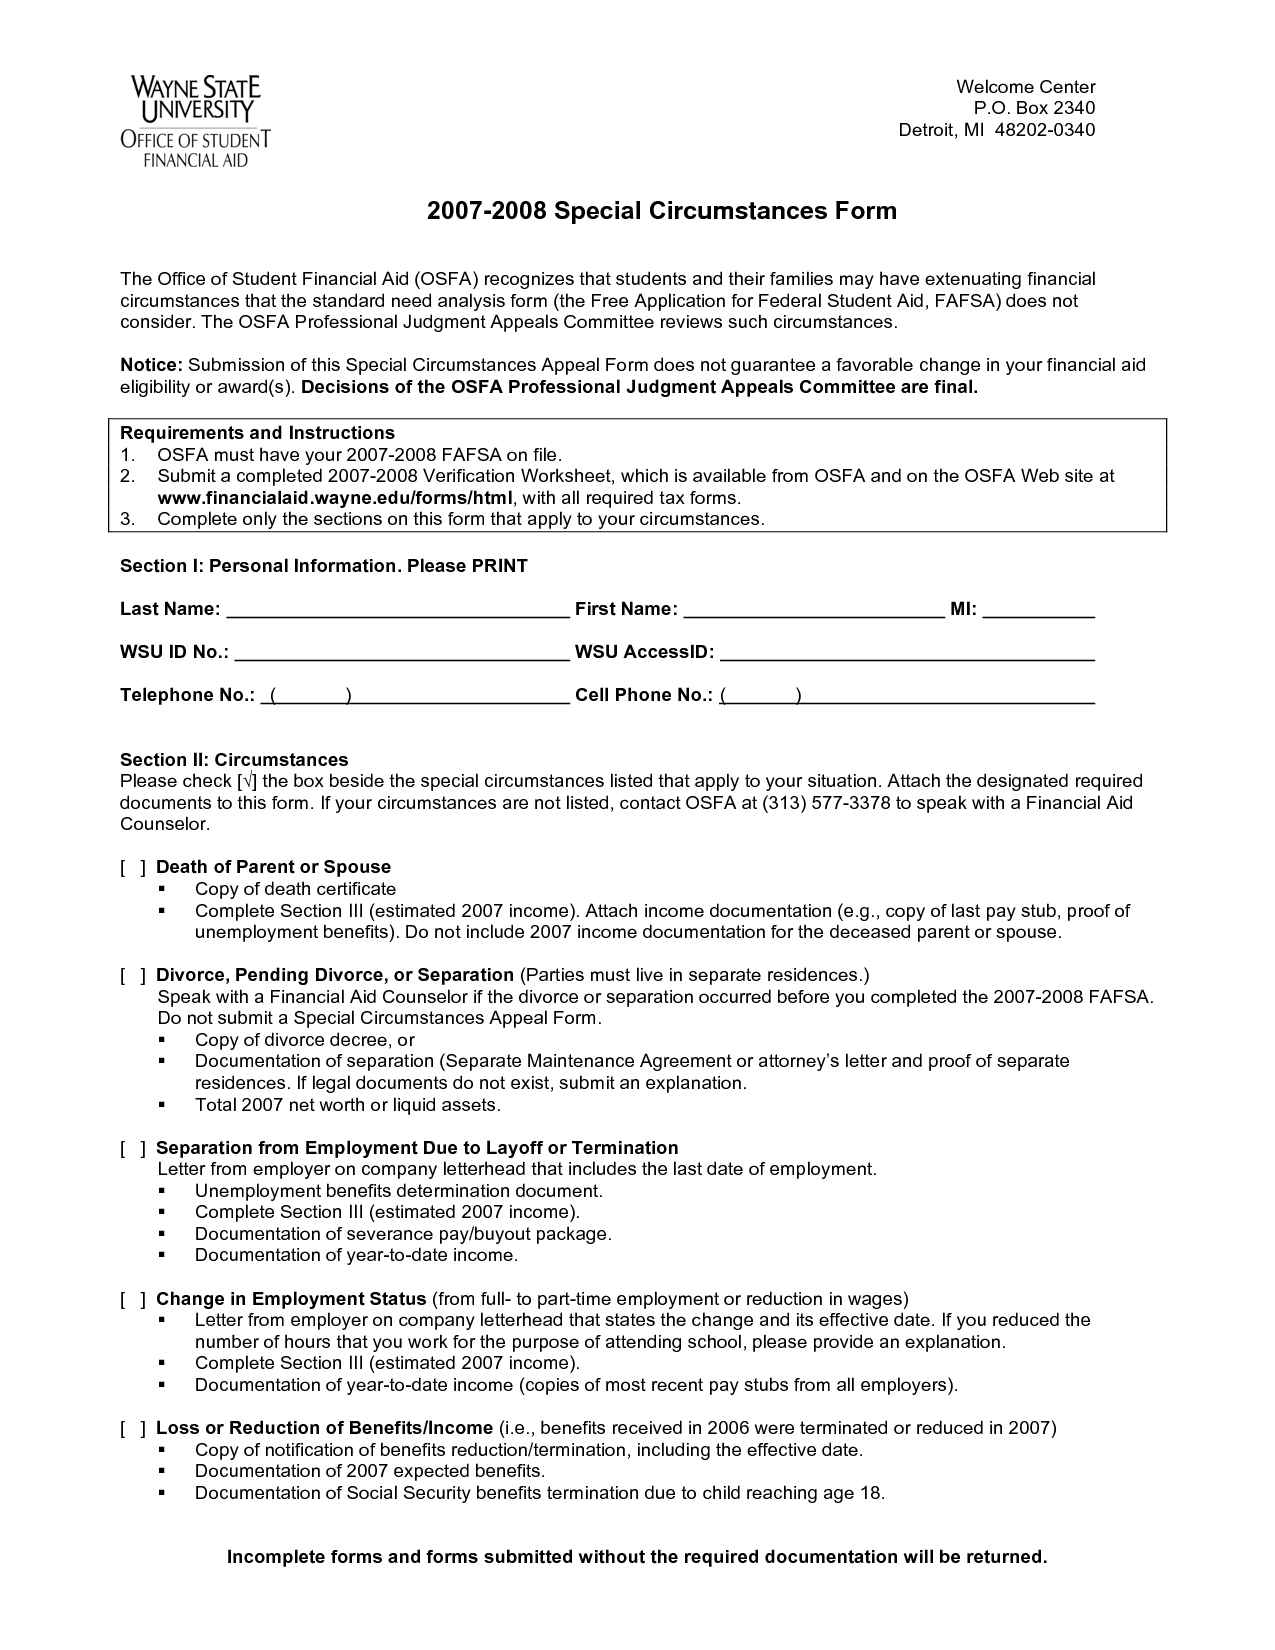 12 Best Photos Of Free Printable Divorce Forms Louisiana - Free - Free Printable Divorce Papers For Louisiana